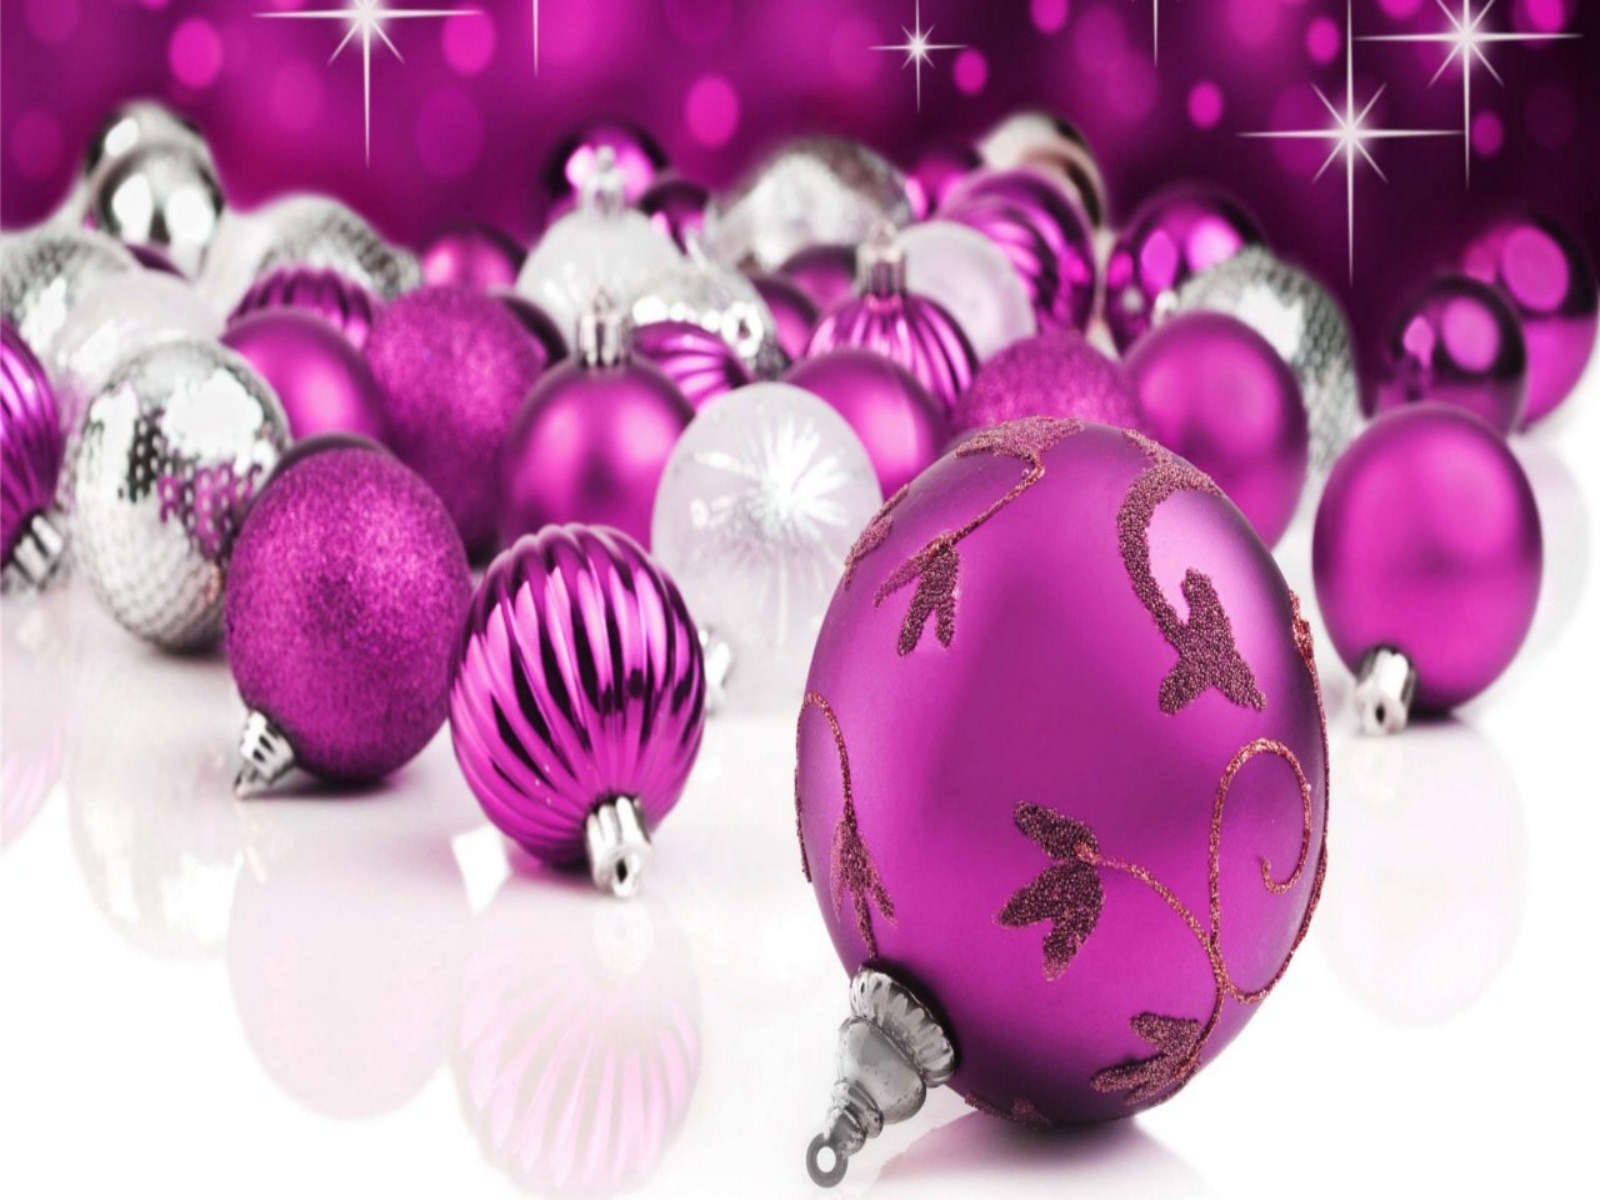 Pink Christmas Background Wallpapers9 1600x1200